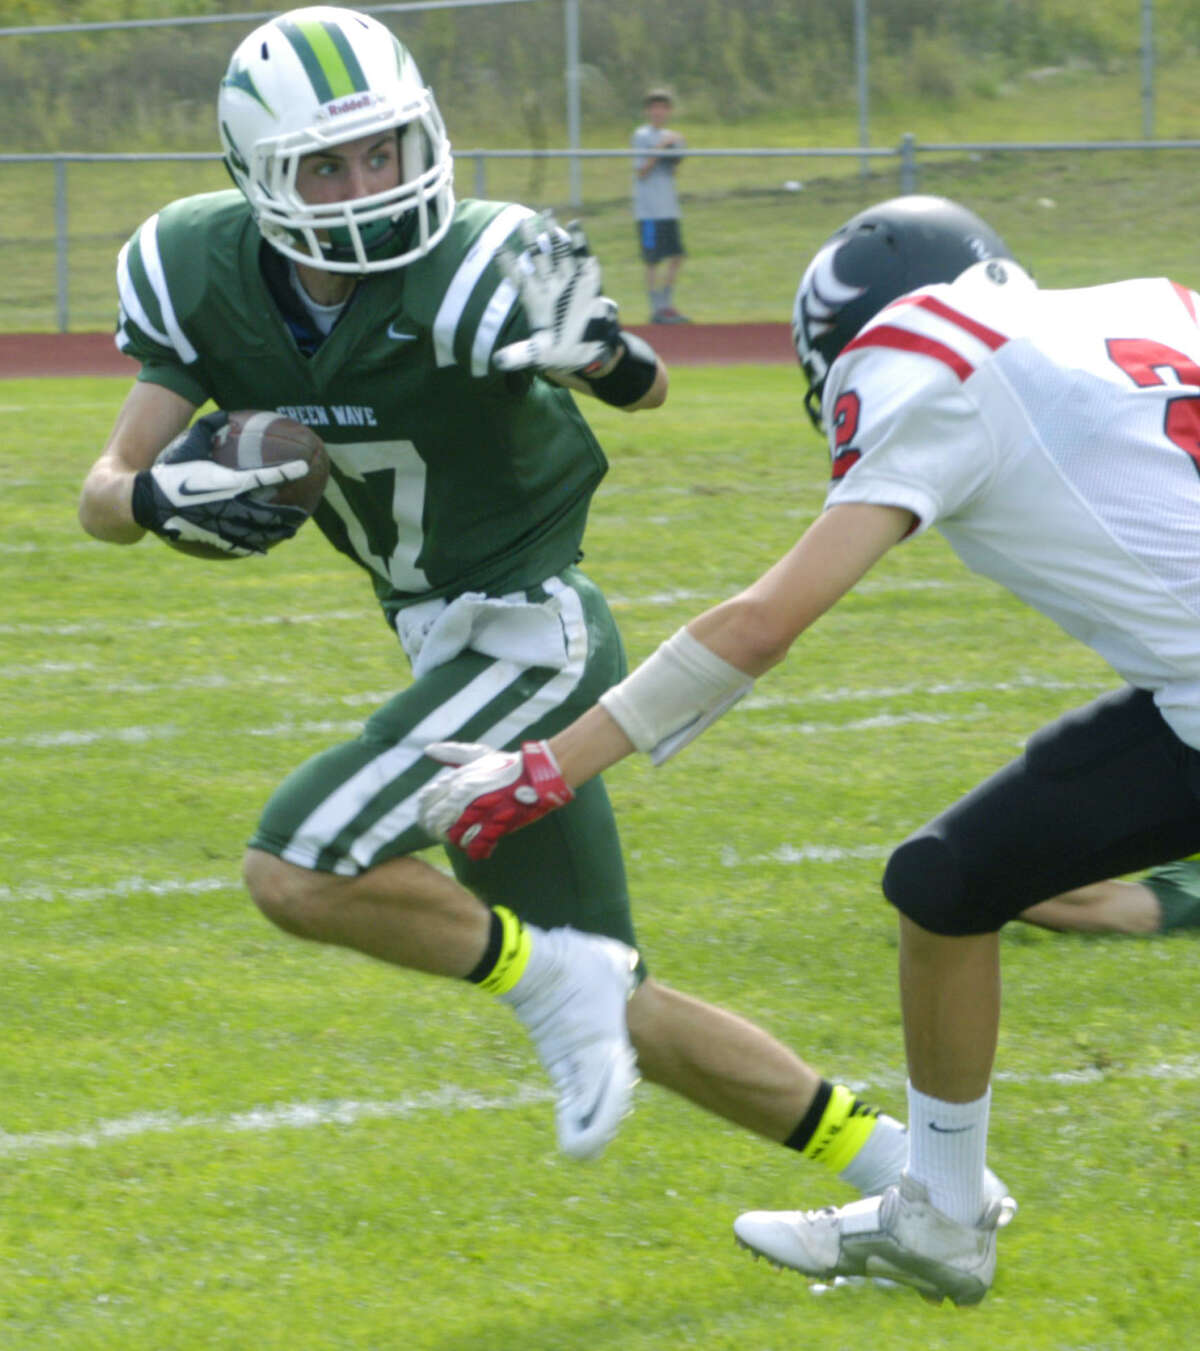 FILE PHOTO: The Green Wave's Nick Kimball eludes a Panther tackler on a kickoff return during New Milford High School football's 71-34 loss to Masuk, Sept. 15, 2013, at NMHS.